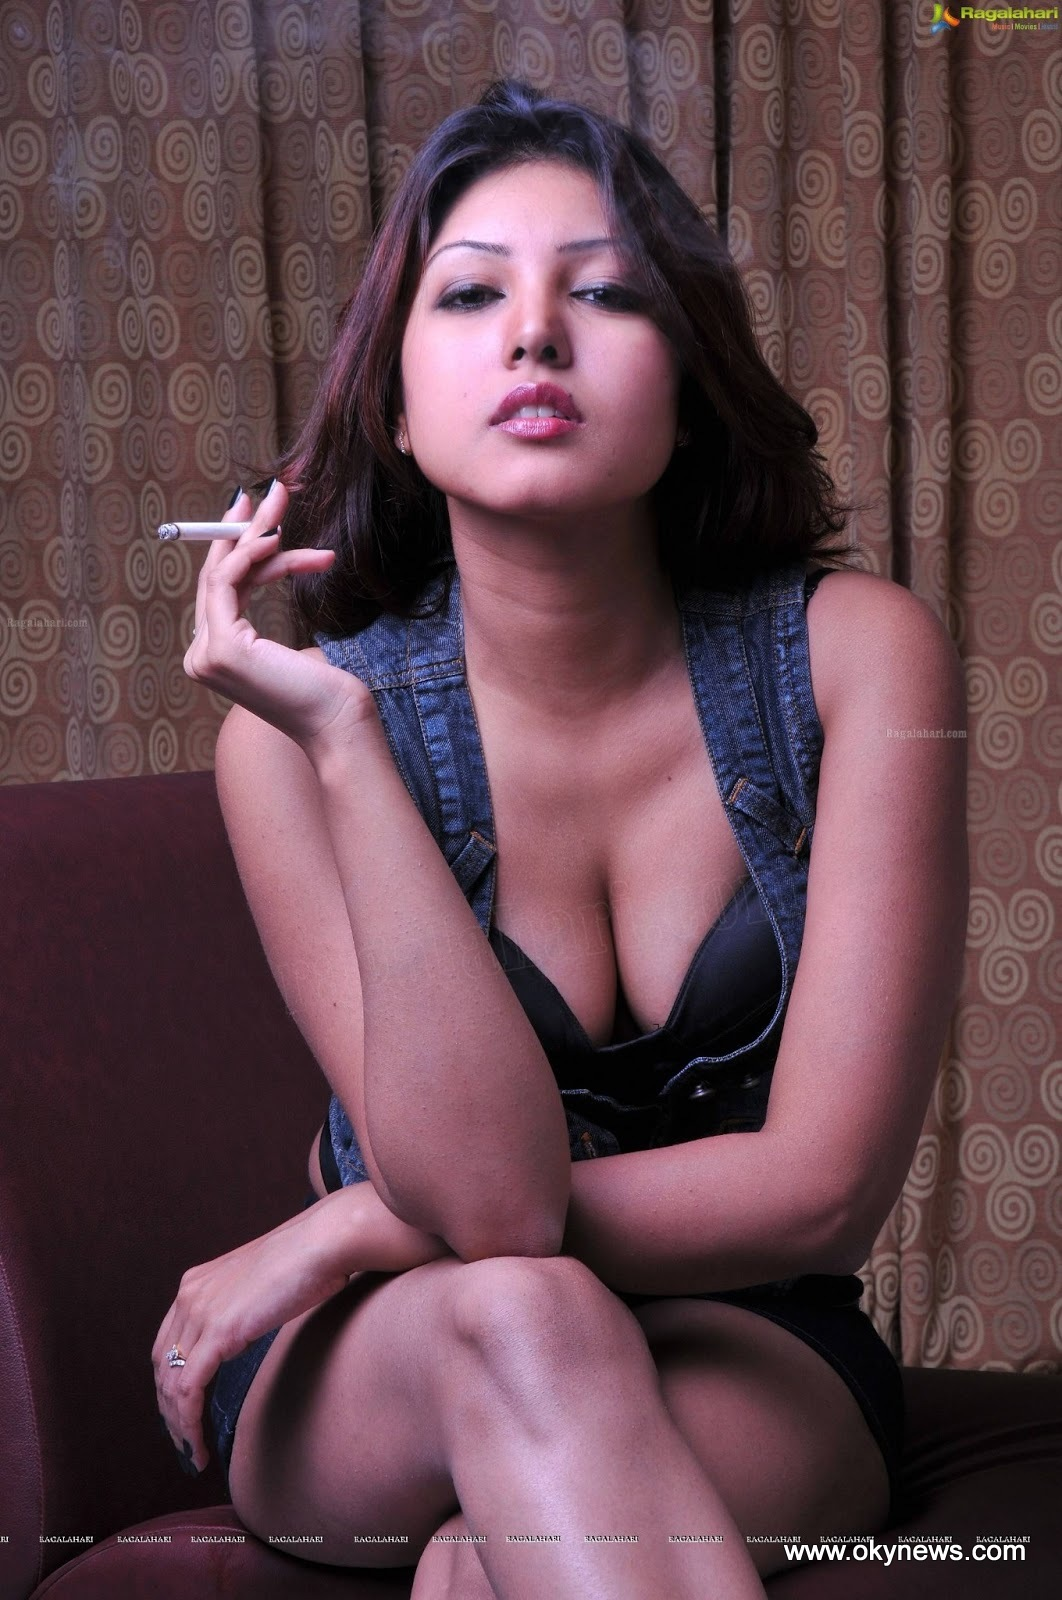 Komal Jha Latest Hot Photoshoot Stills AblVucoz